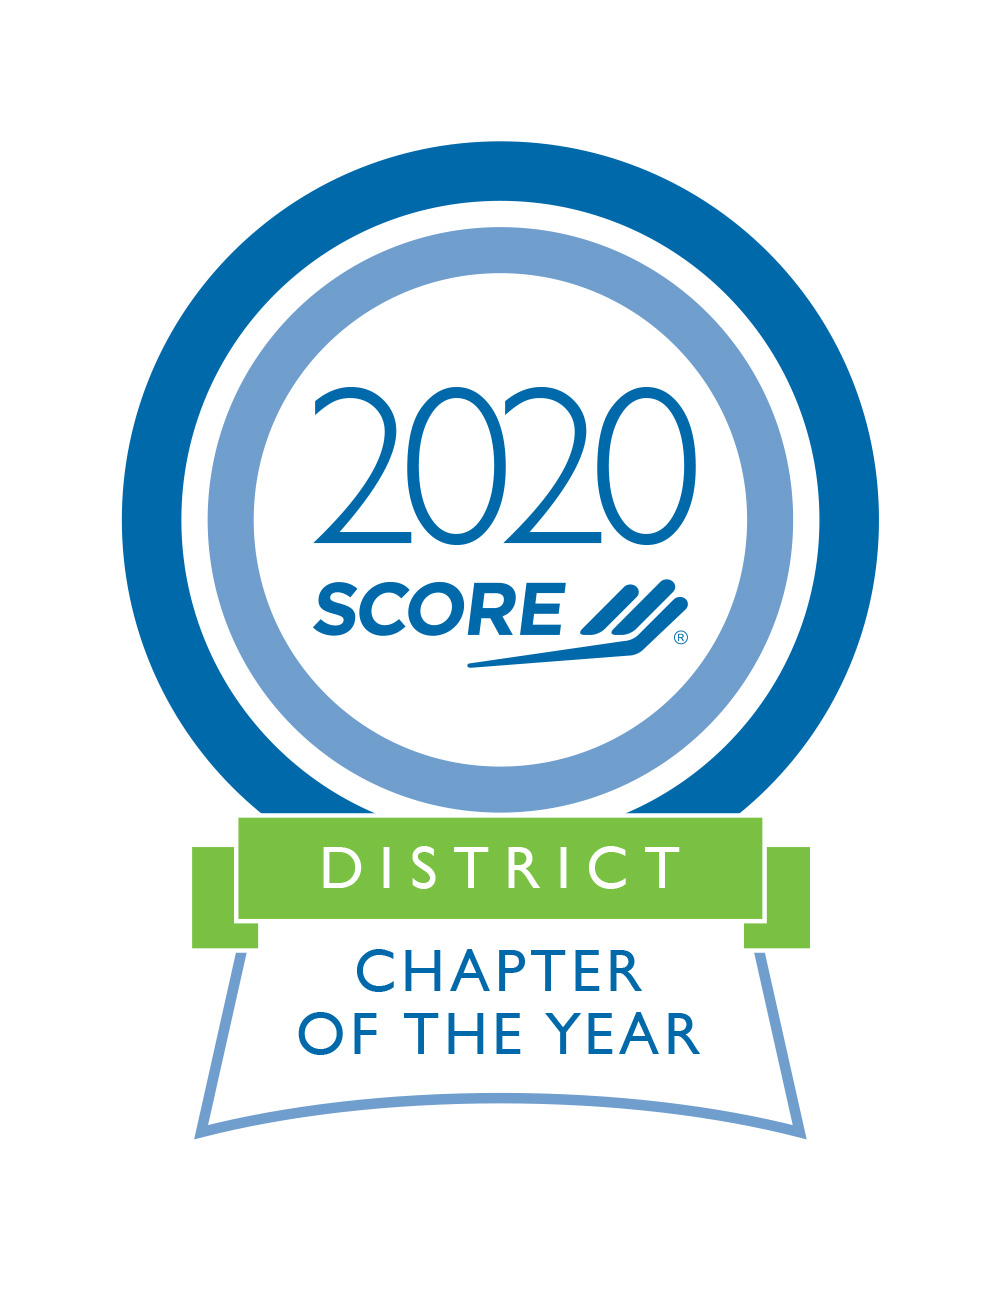 Northern Maine Chapter of the Year District